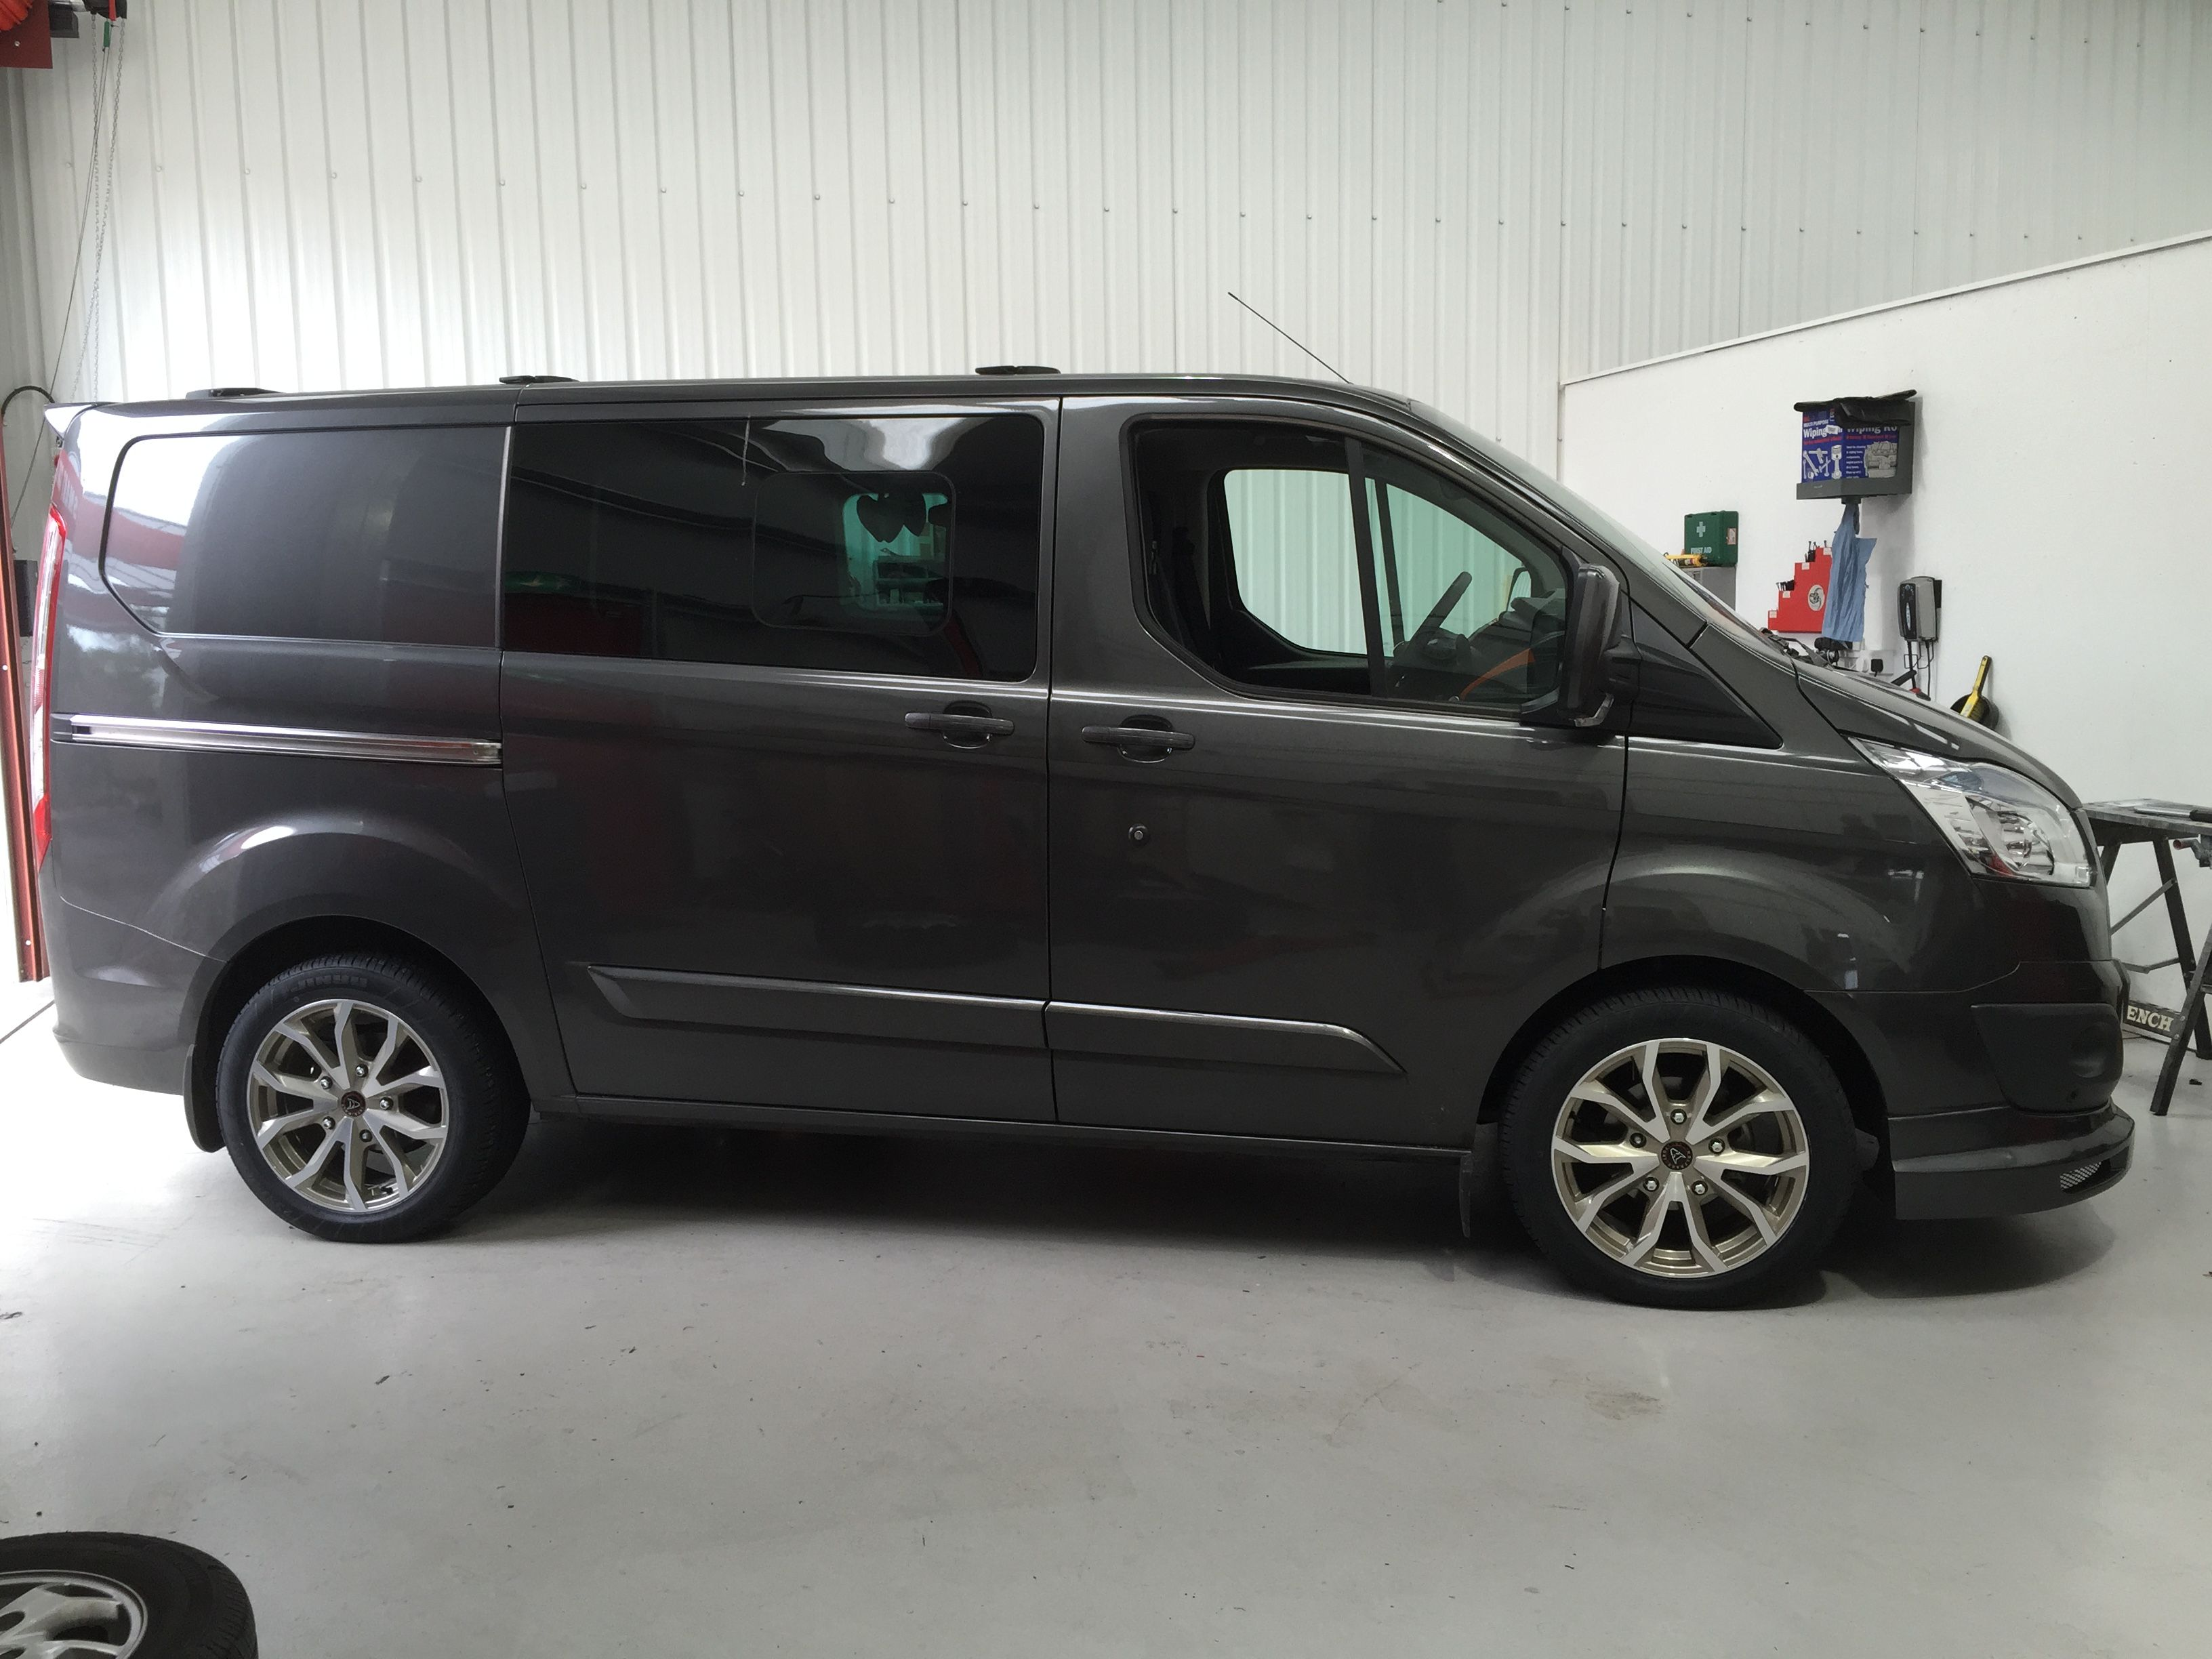 Transit With Assassin Trs Wolfrace Alloy Wheels Before After